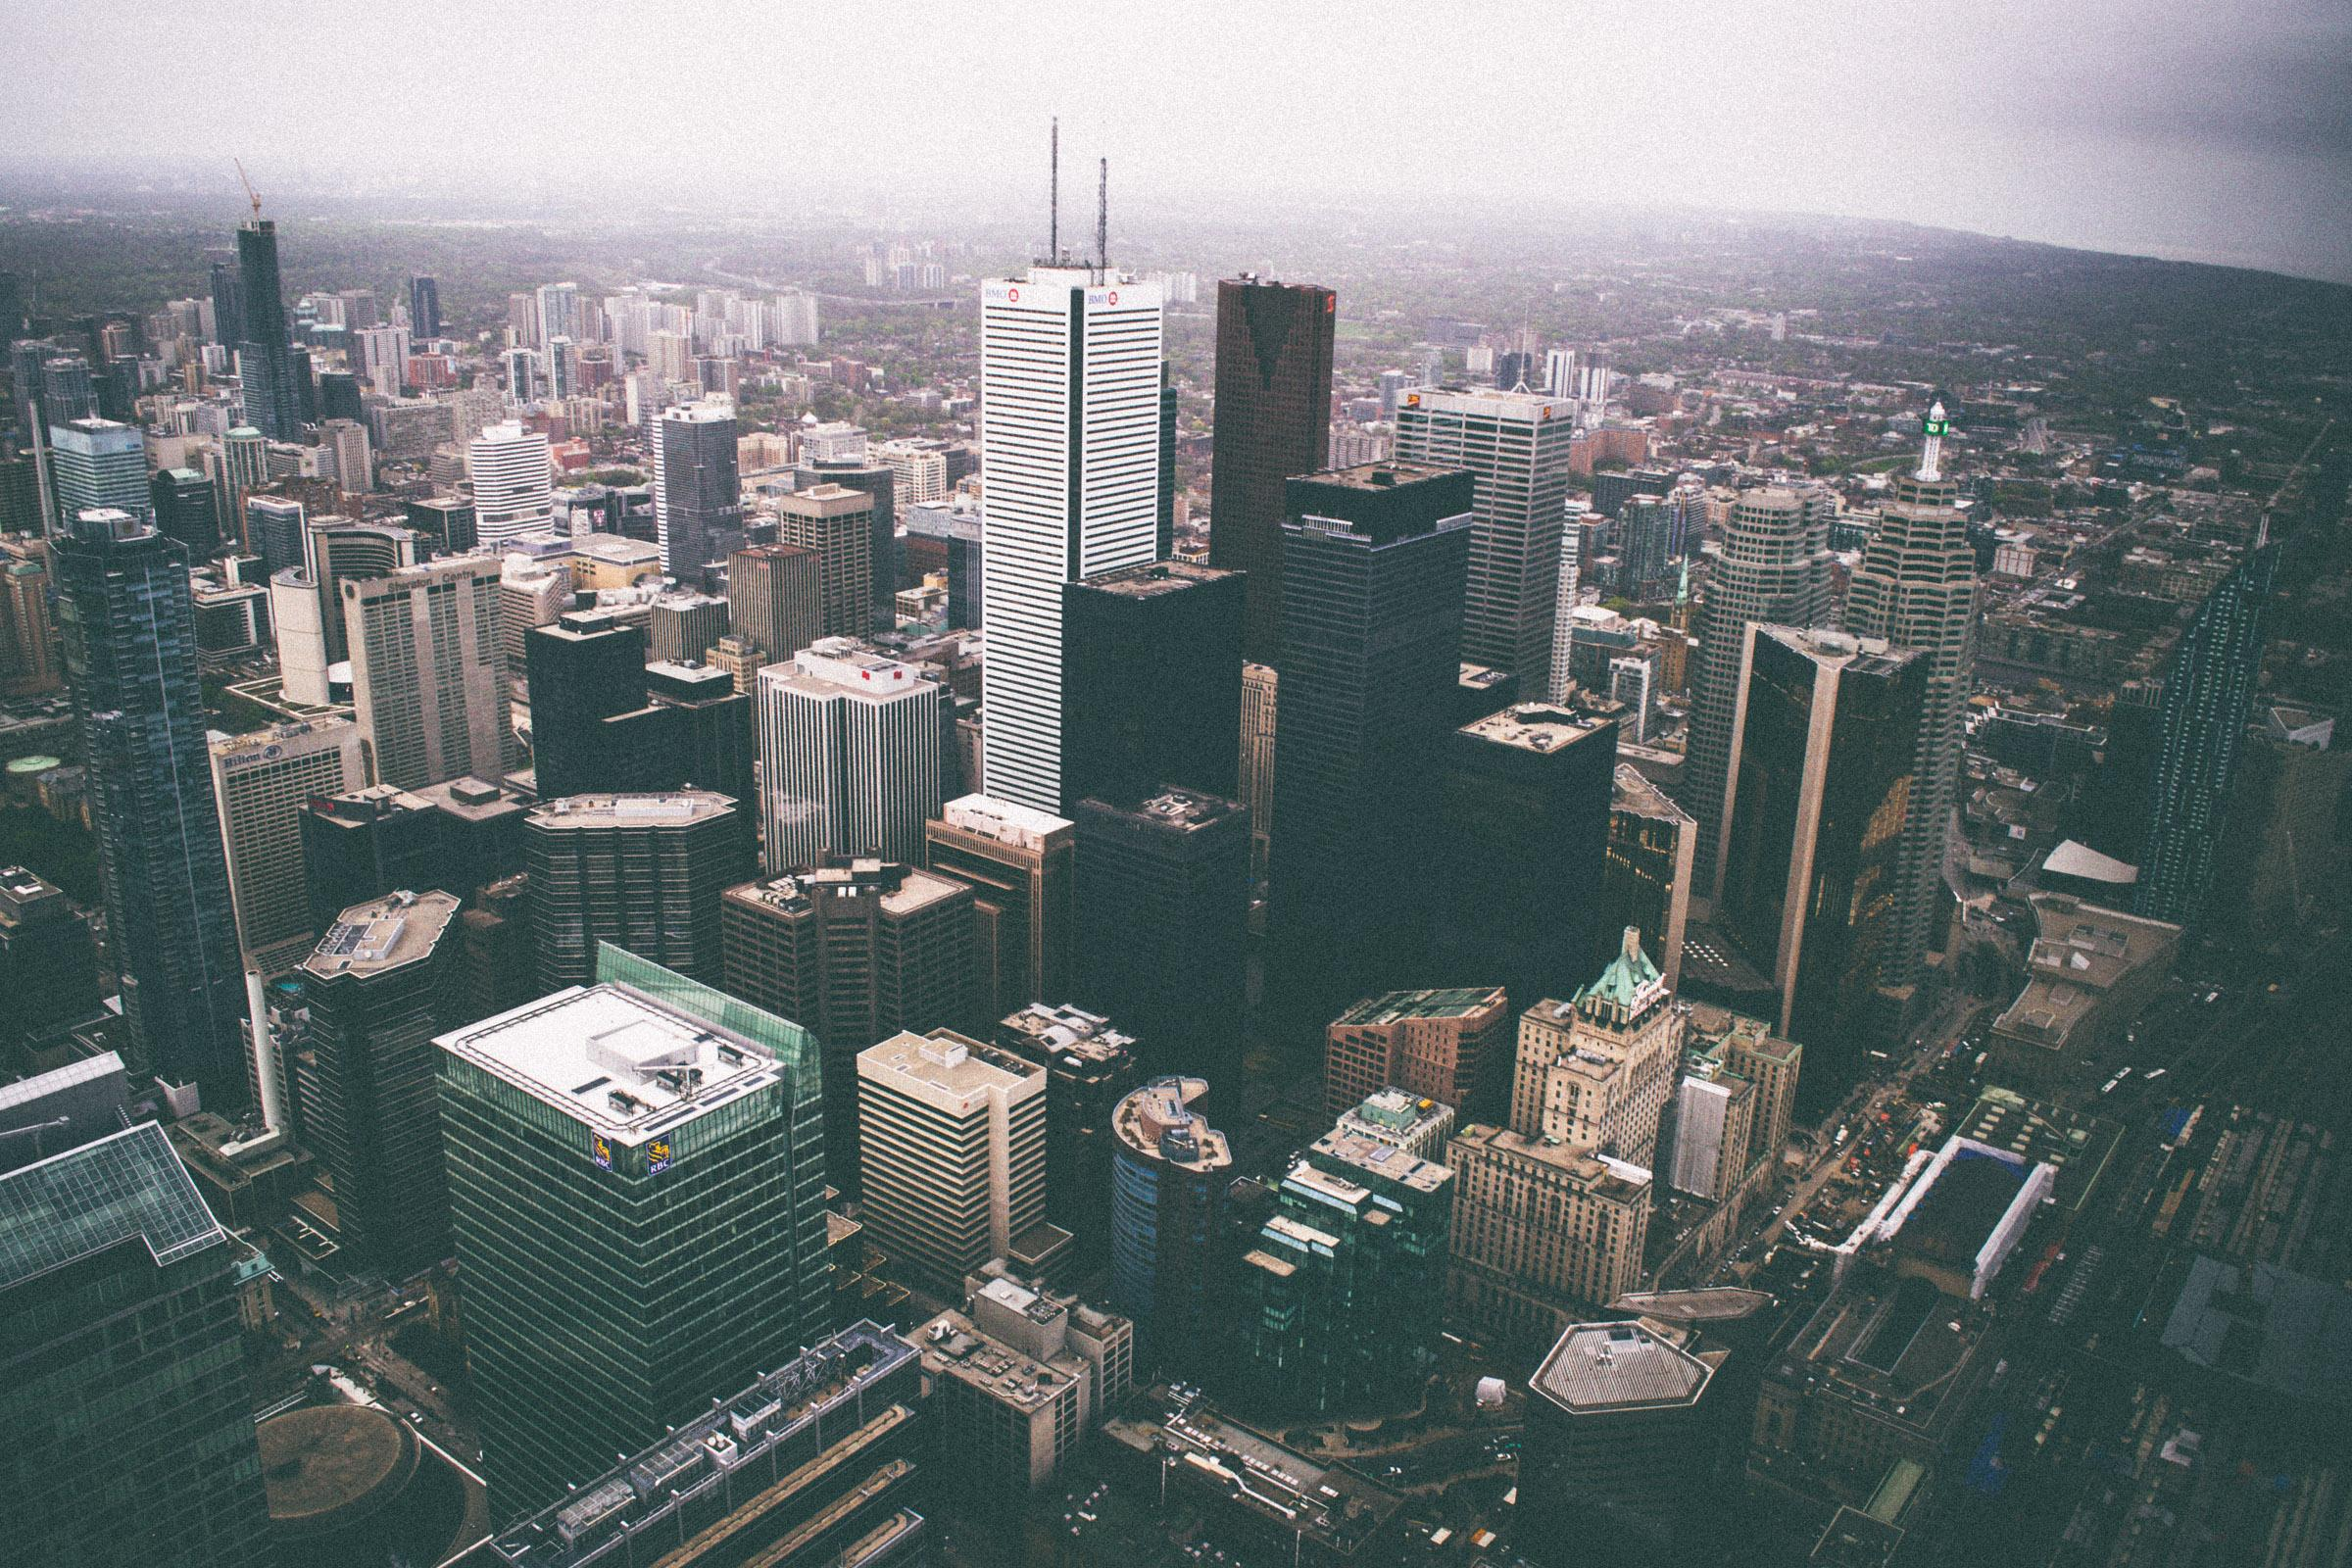 From Toronto with love - image 17 - student project